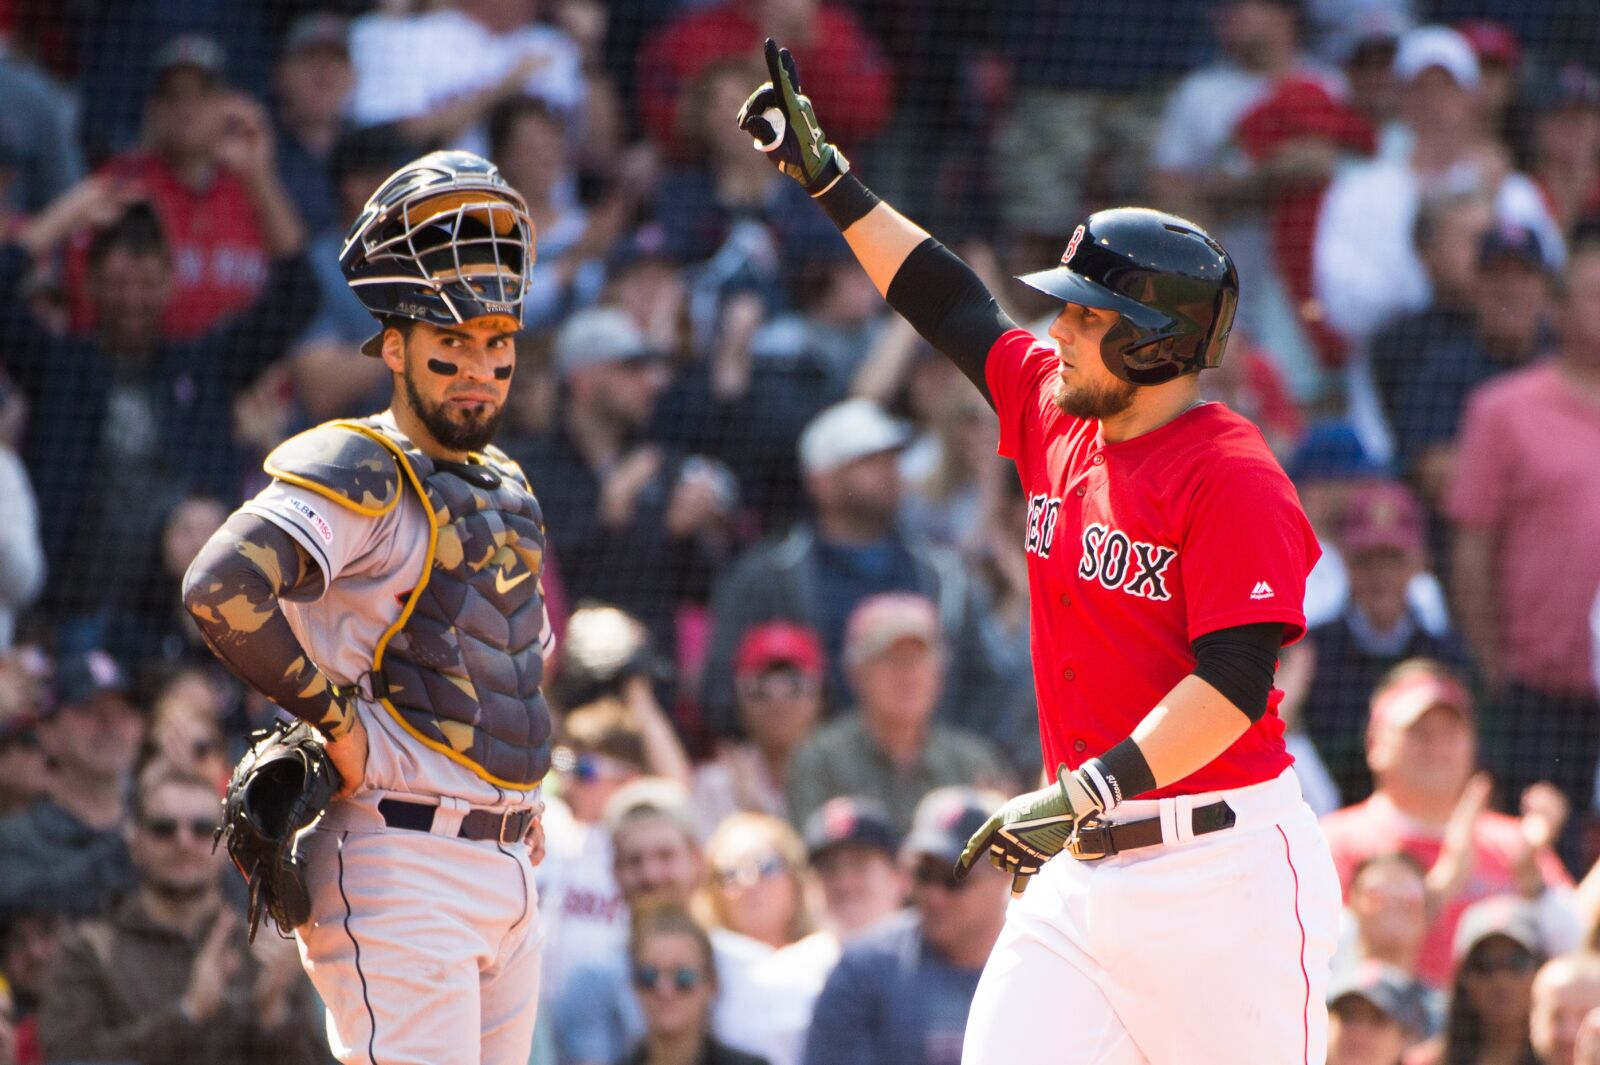 Astros' win streak ends at 10 with 4-3 loss to Red Sox